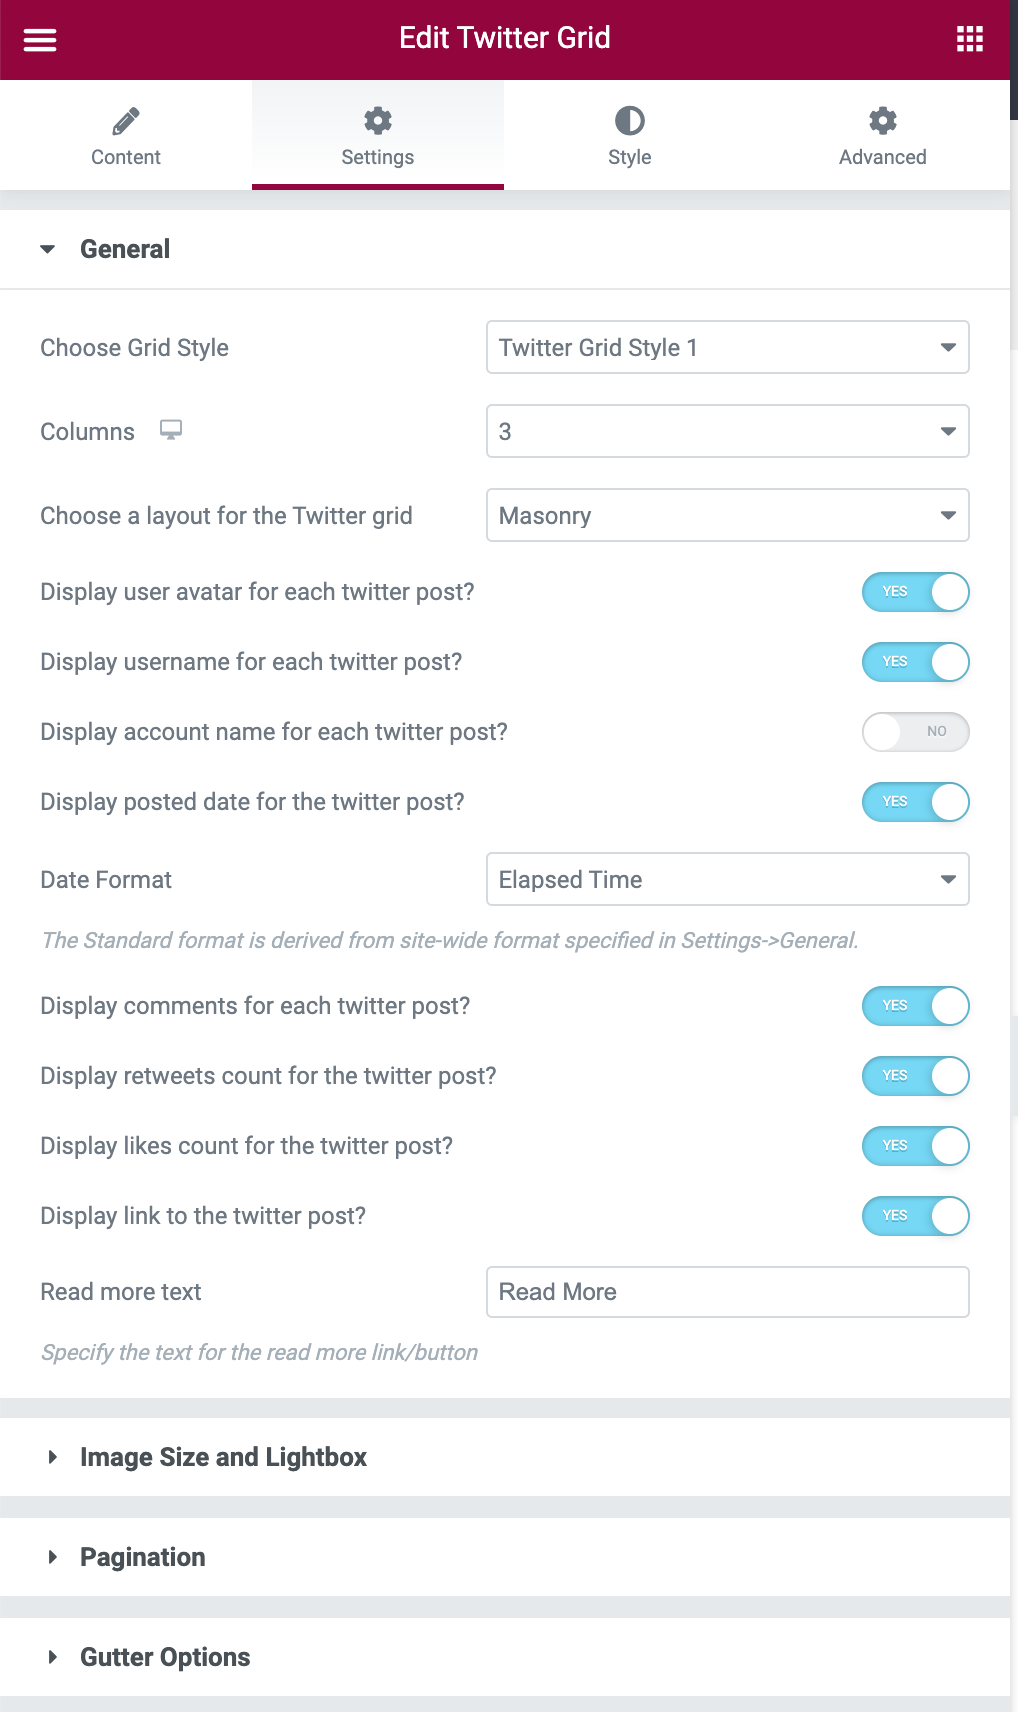 Twitter Grid Settings Tab